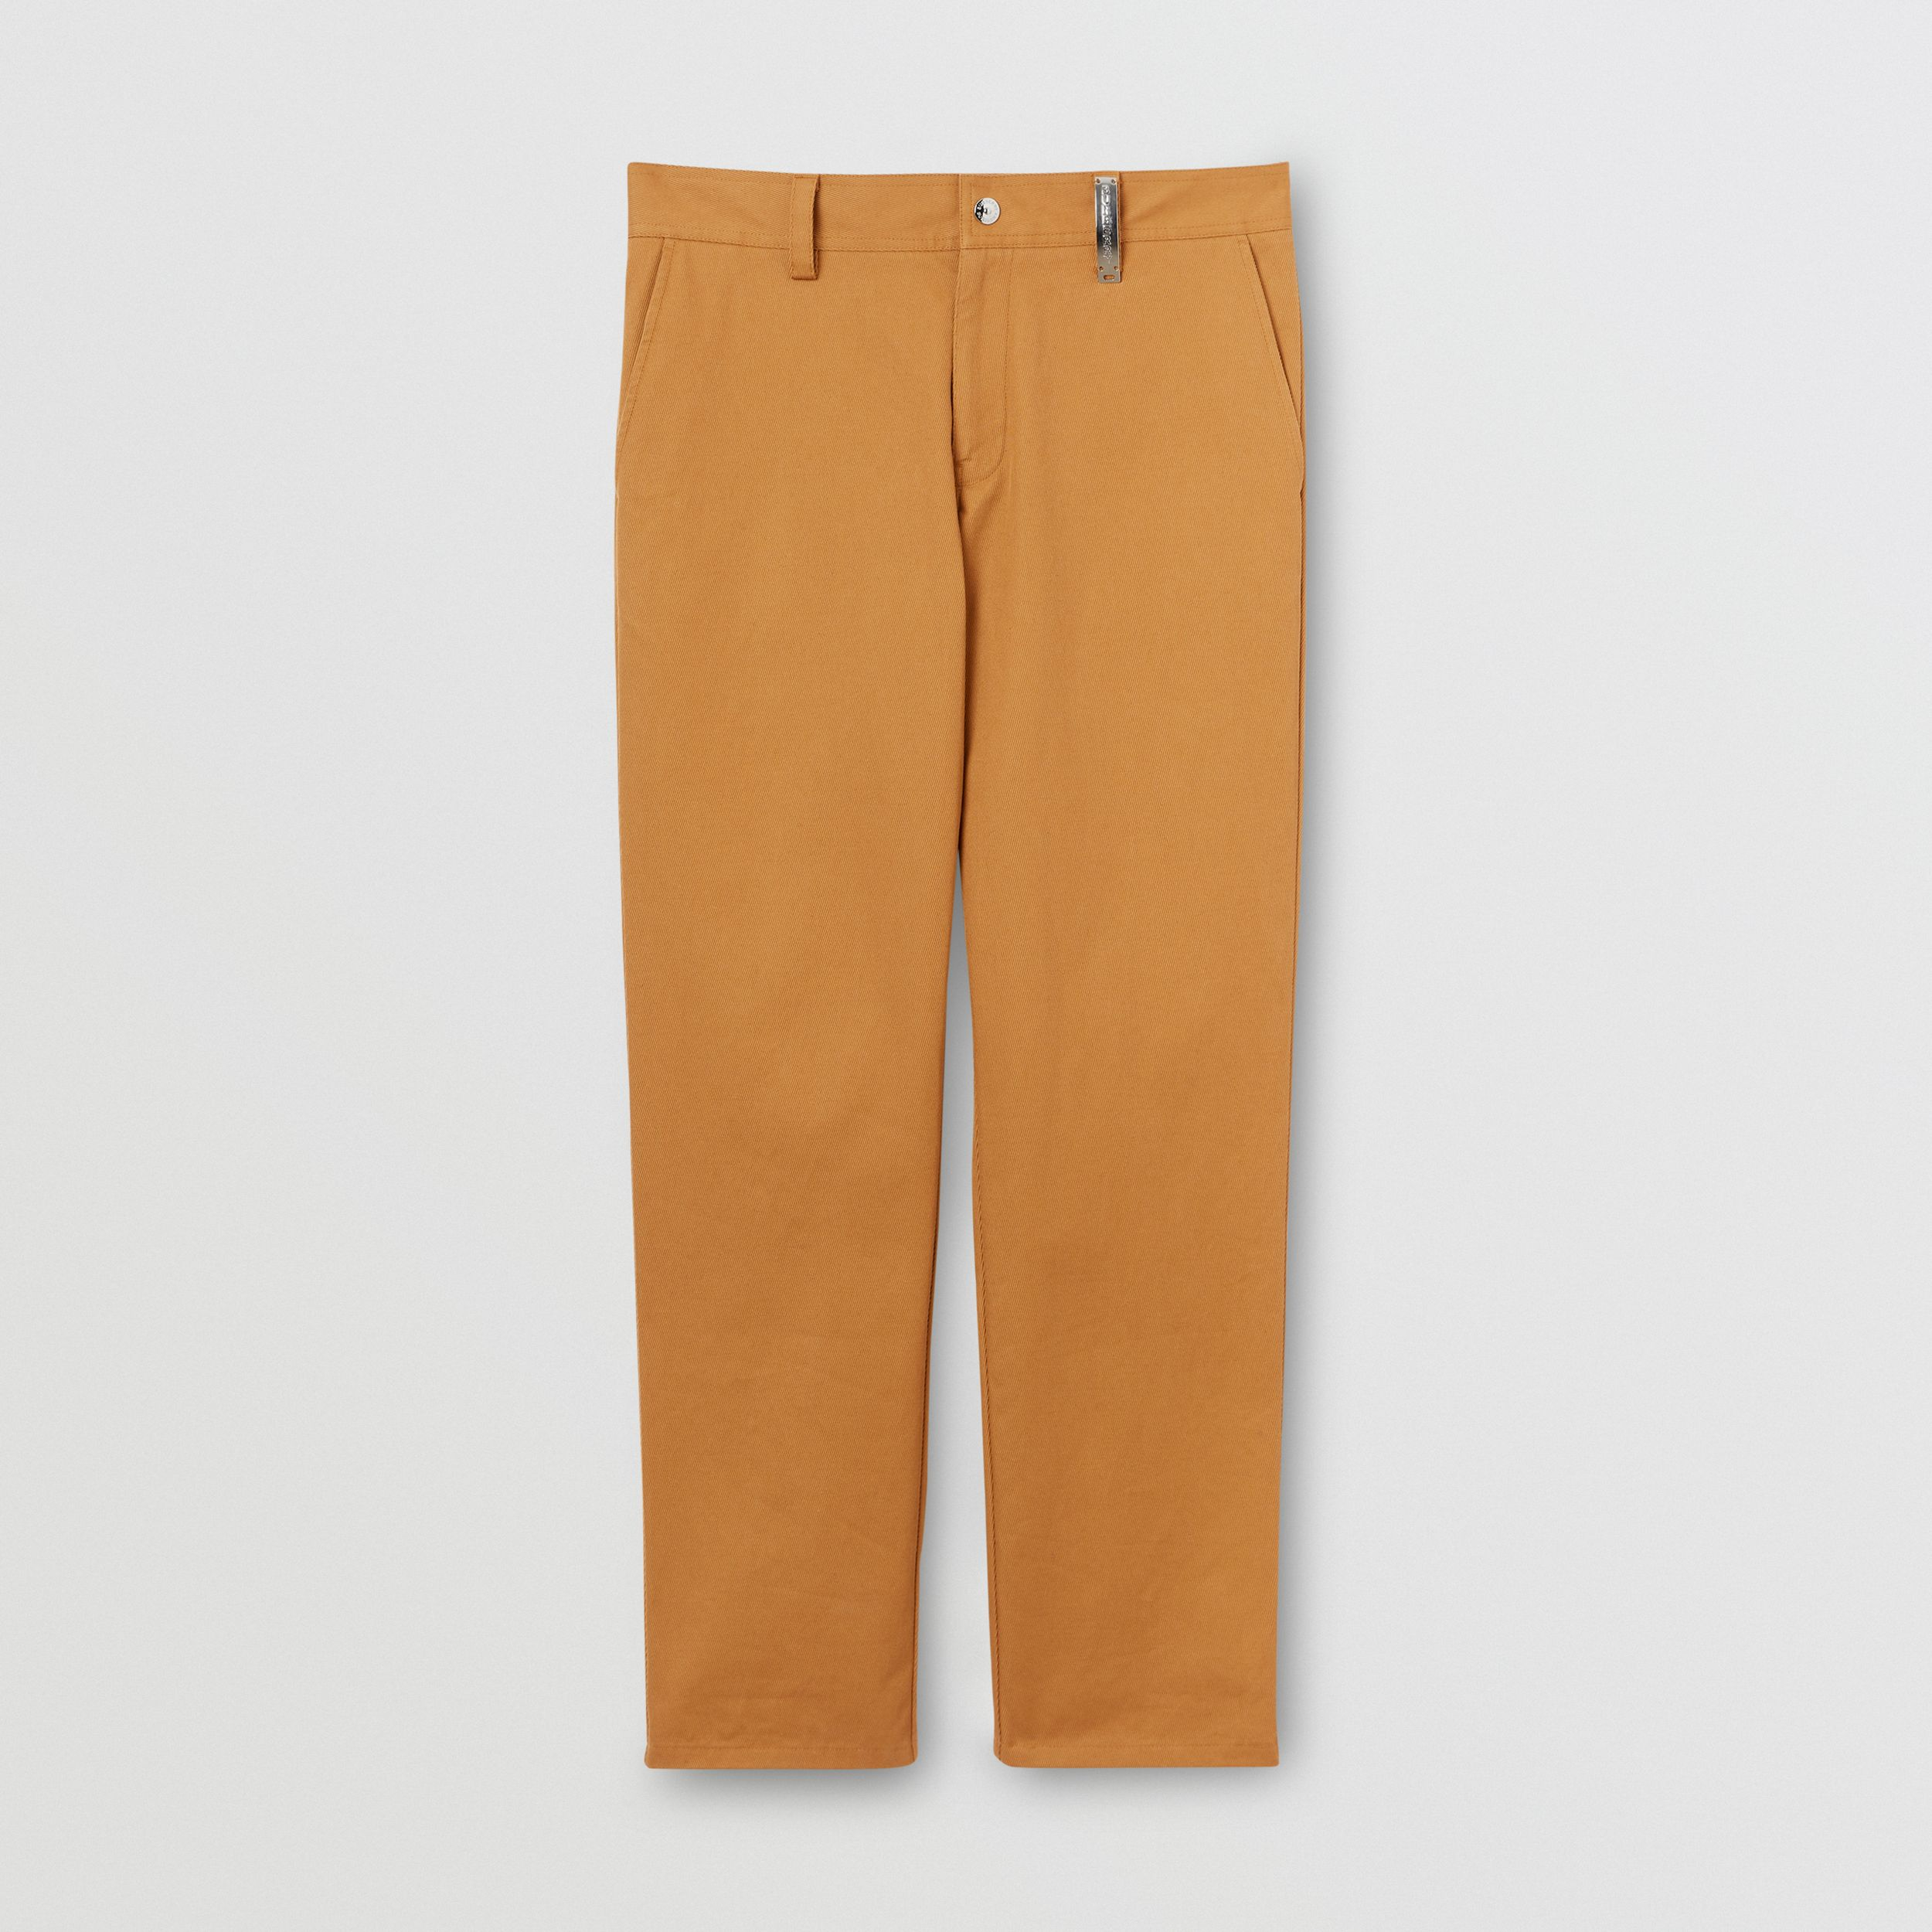 Straight Fit Logo Detail Cotton Chinos in Camel - Men | Burberry - 4